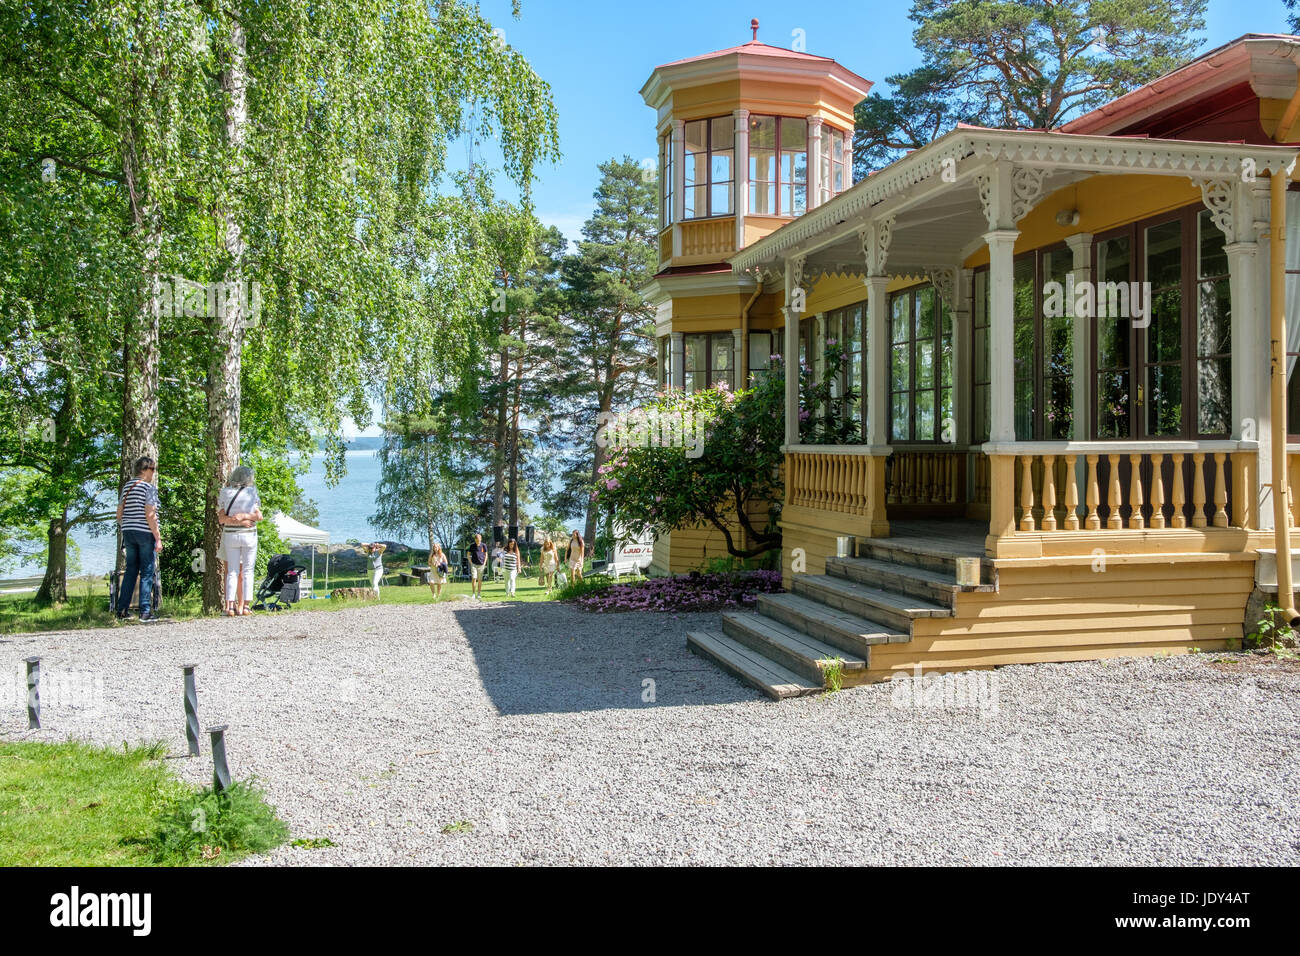 Abborreberg recreational area in Norrkoping. Norrkoping is a historic industrial town in Sweden. Stock Photo